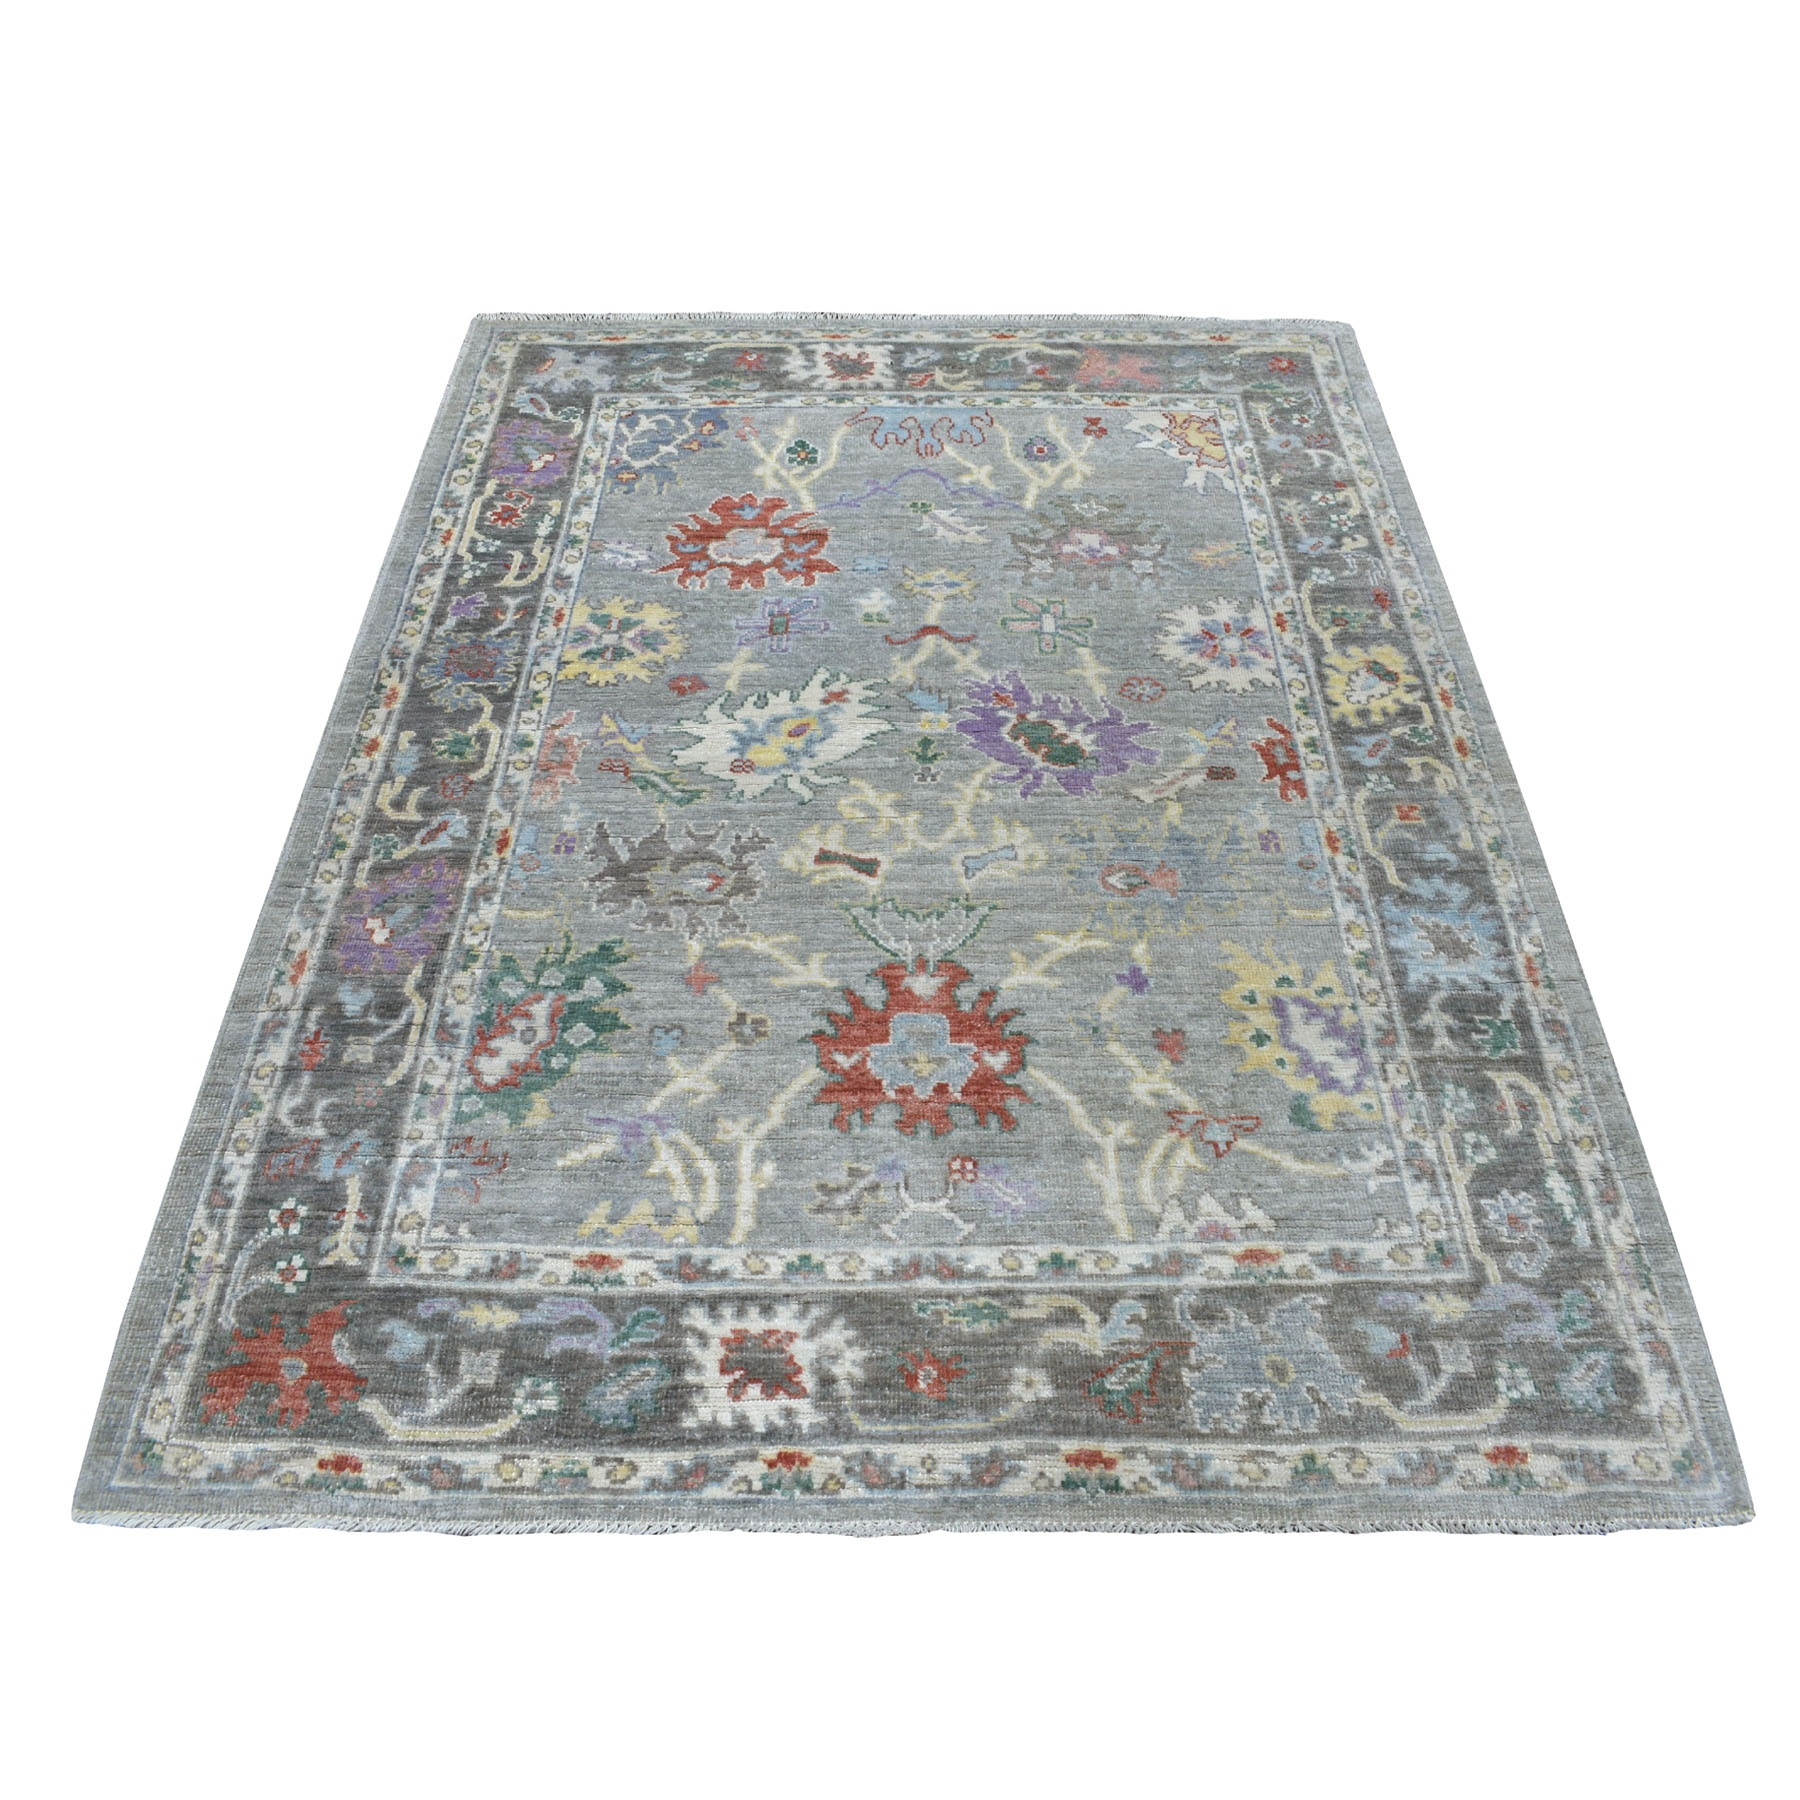 "5'x6'8"" Gray Angora Oushak With Soft Wool Hand Woven Oriental Rug"